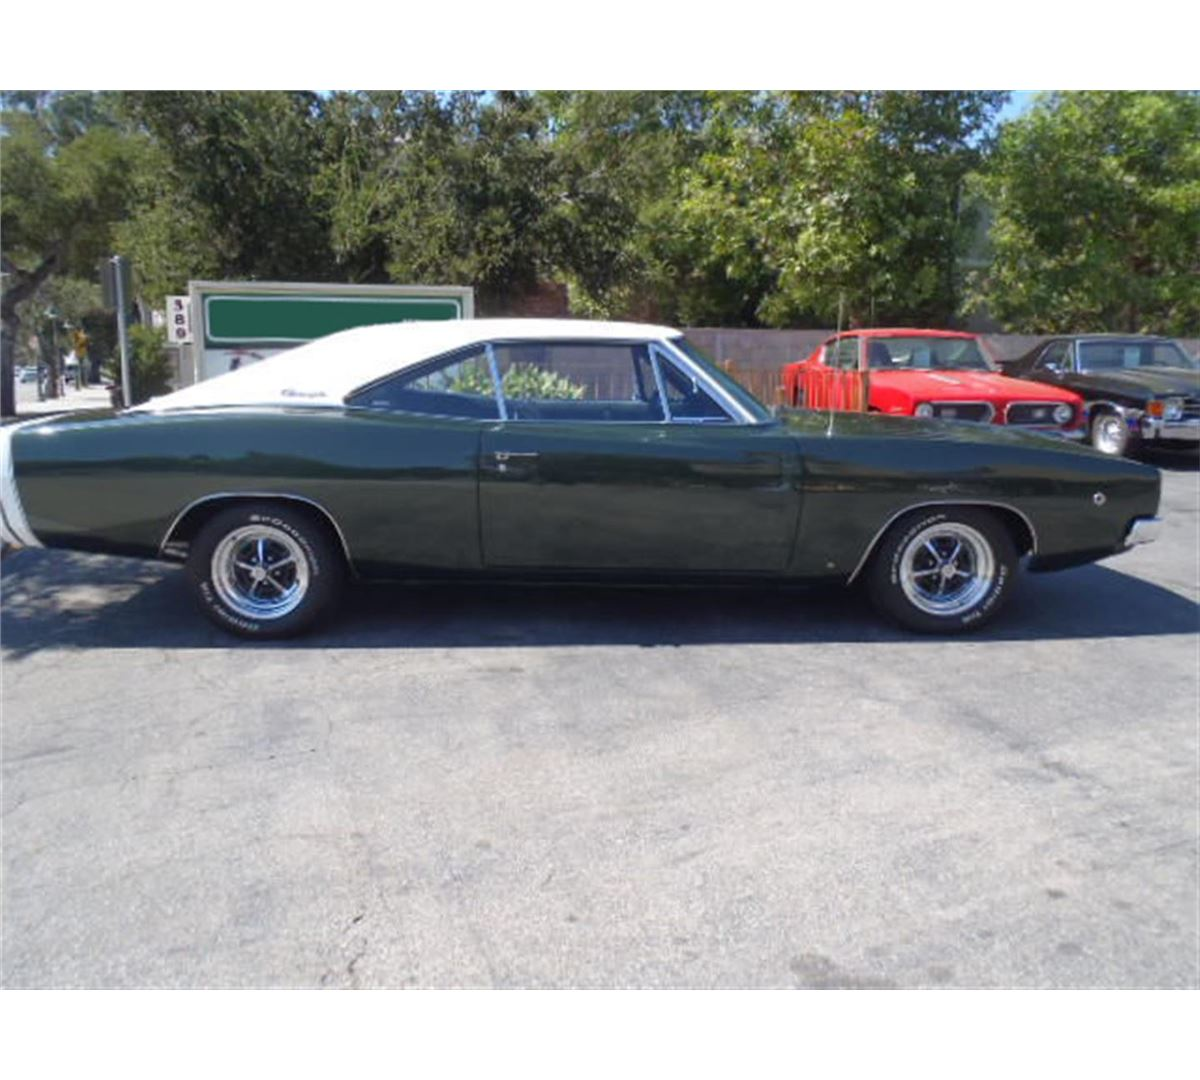 1968 dodge charger 2 door hardtop seized assets auctioneers. Black Bedroom Furniture Sets. Home Design Ideas